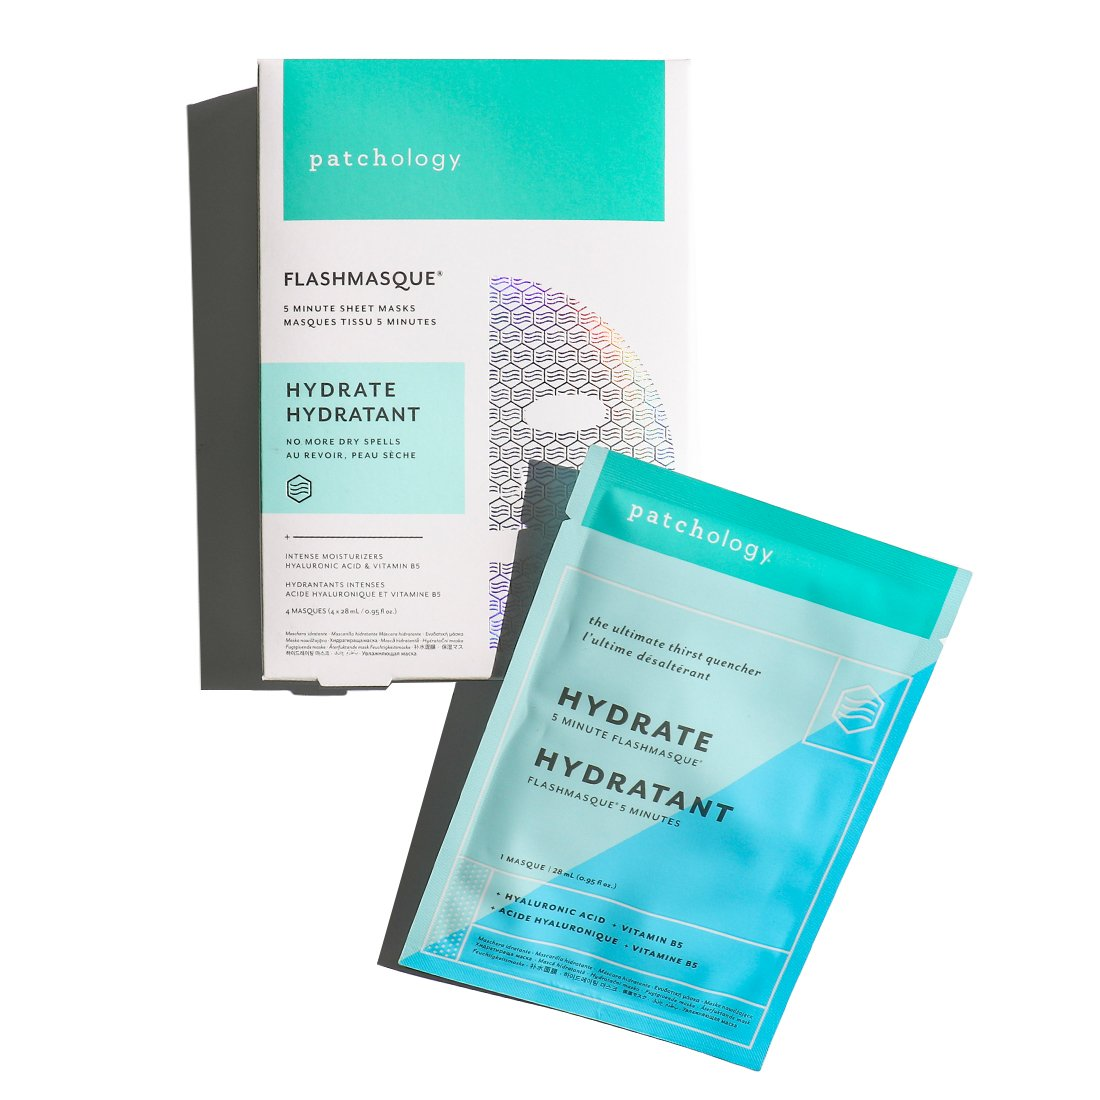 Flashmasque Hydrate 5-Minute  4-Pack by Patchology